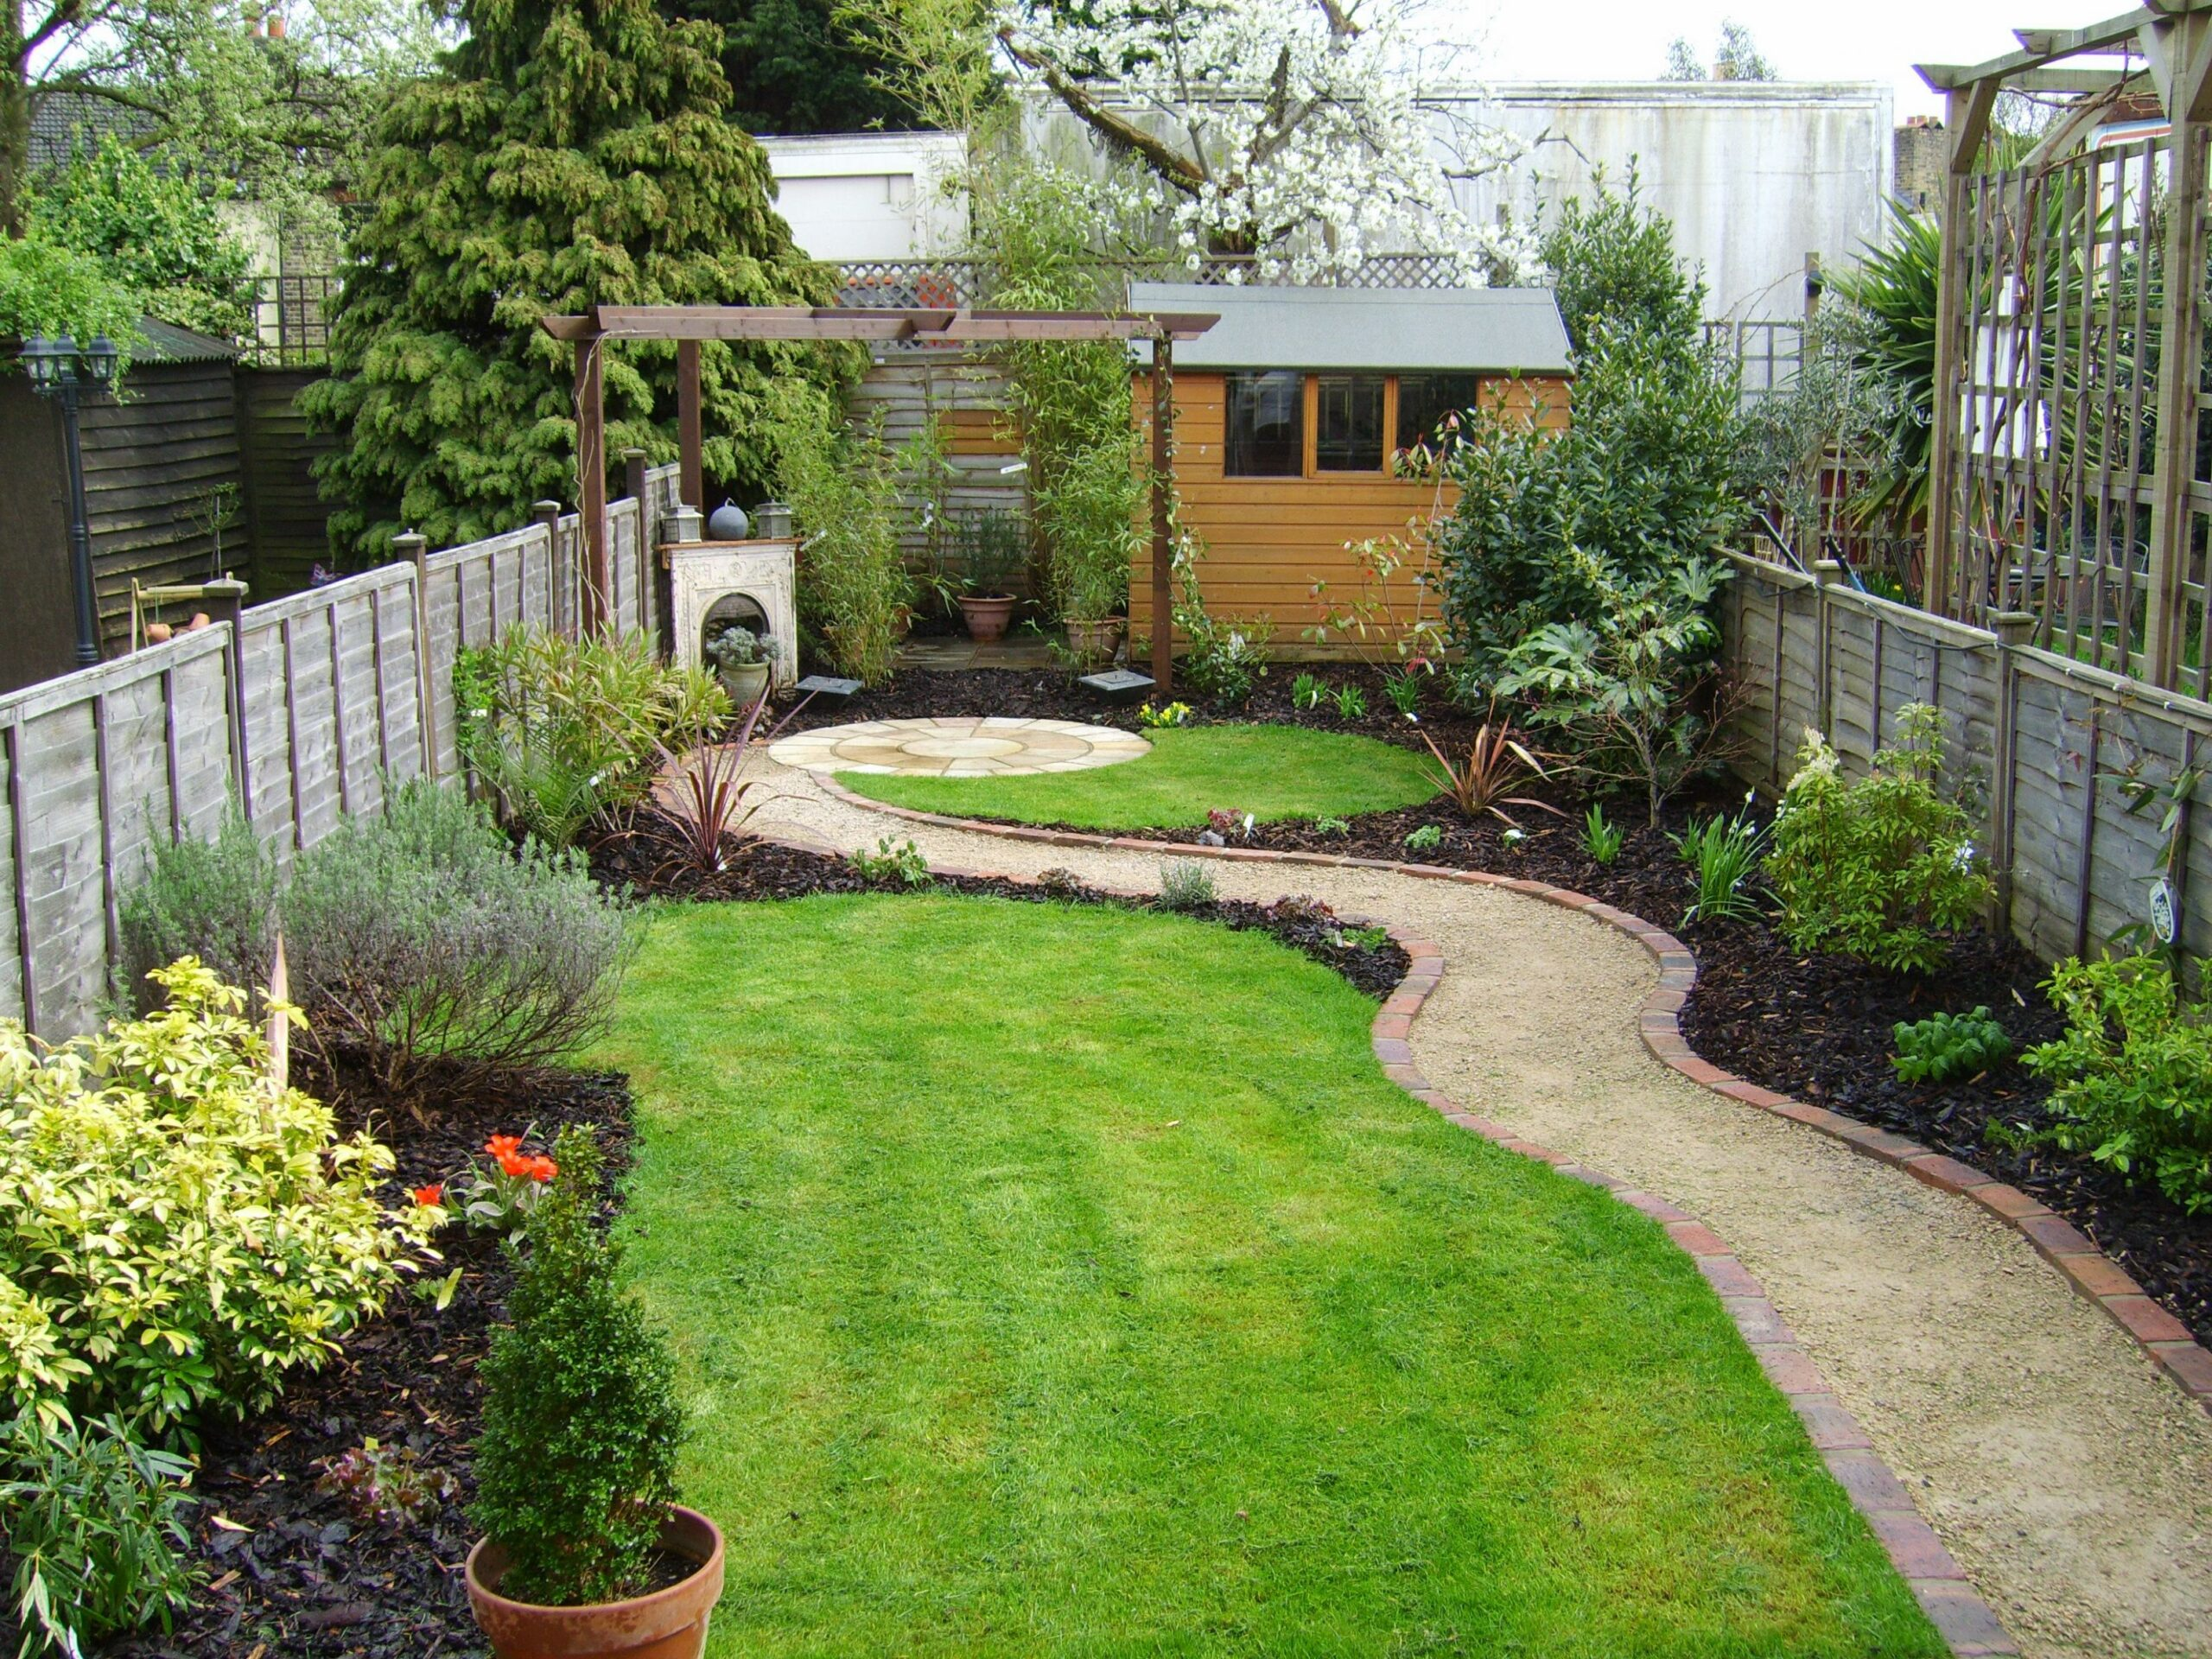 Cottages For You (With images) | Narrow garden, Small garden ...